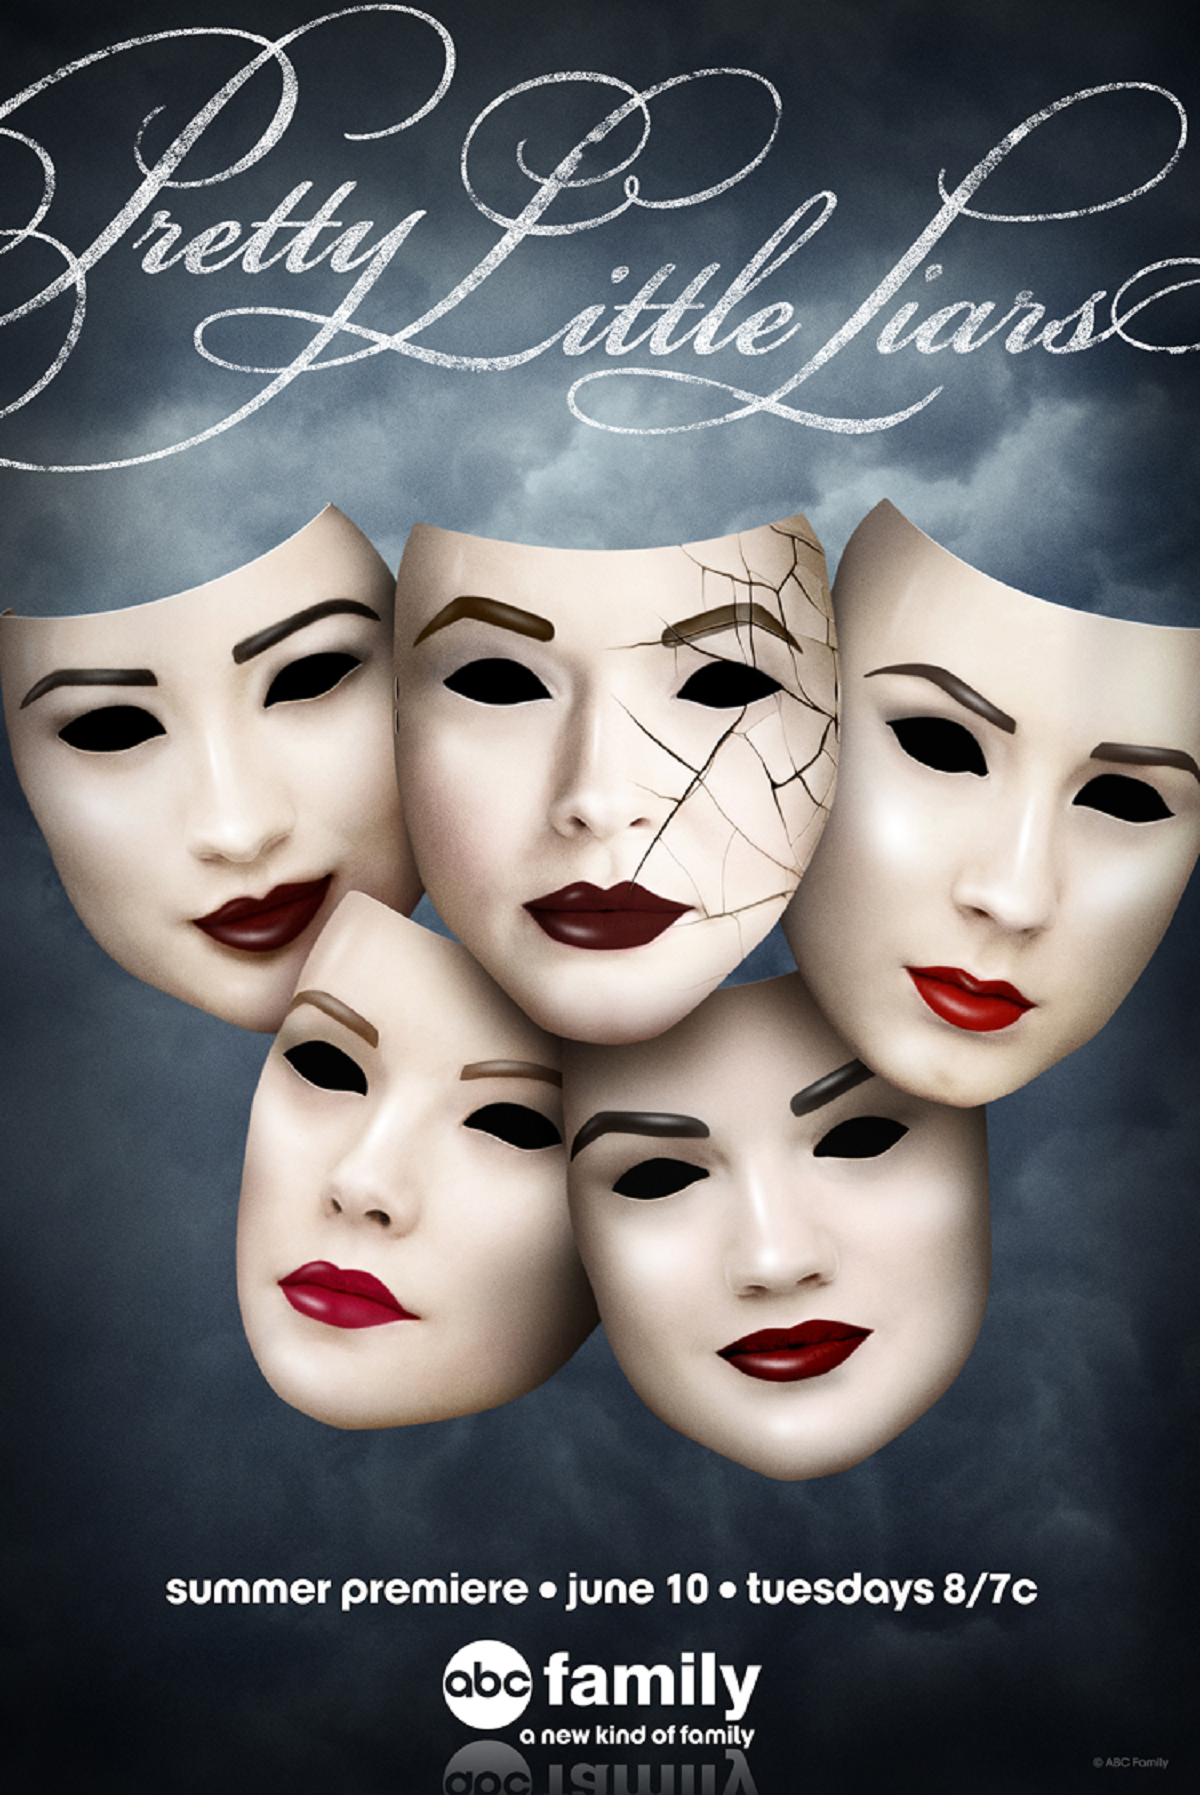 Pretty Little Liars Season 4 Promo Poster